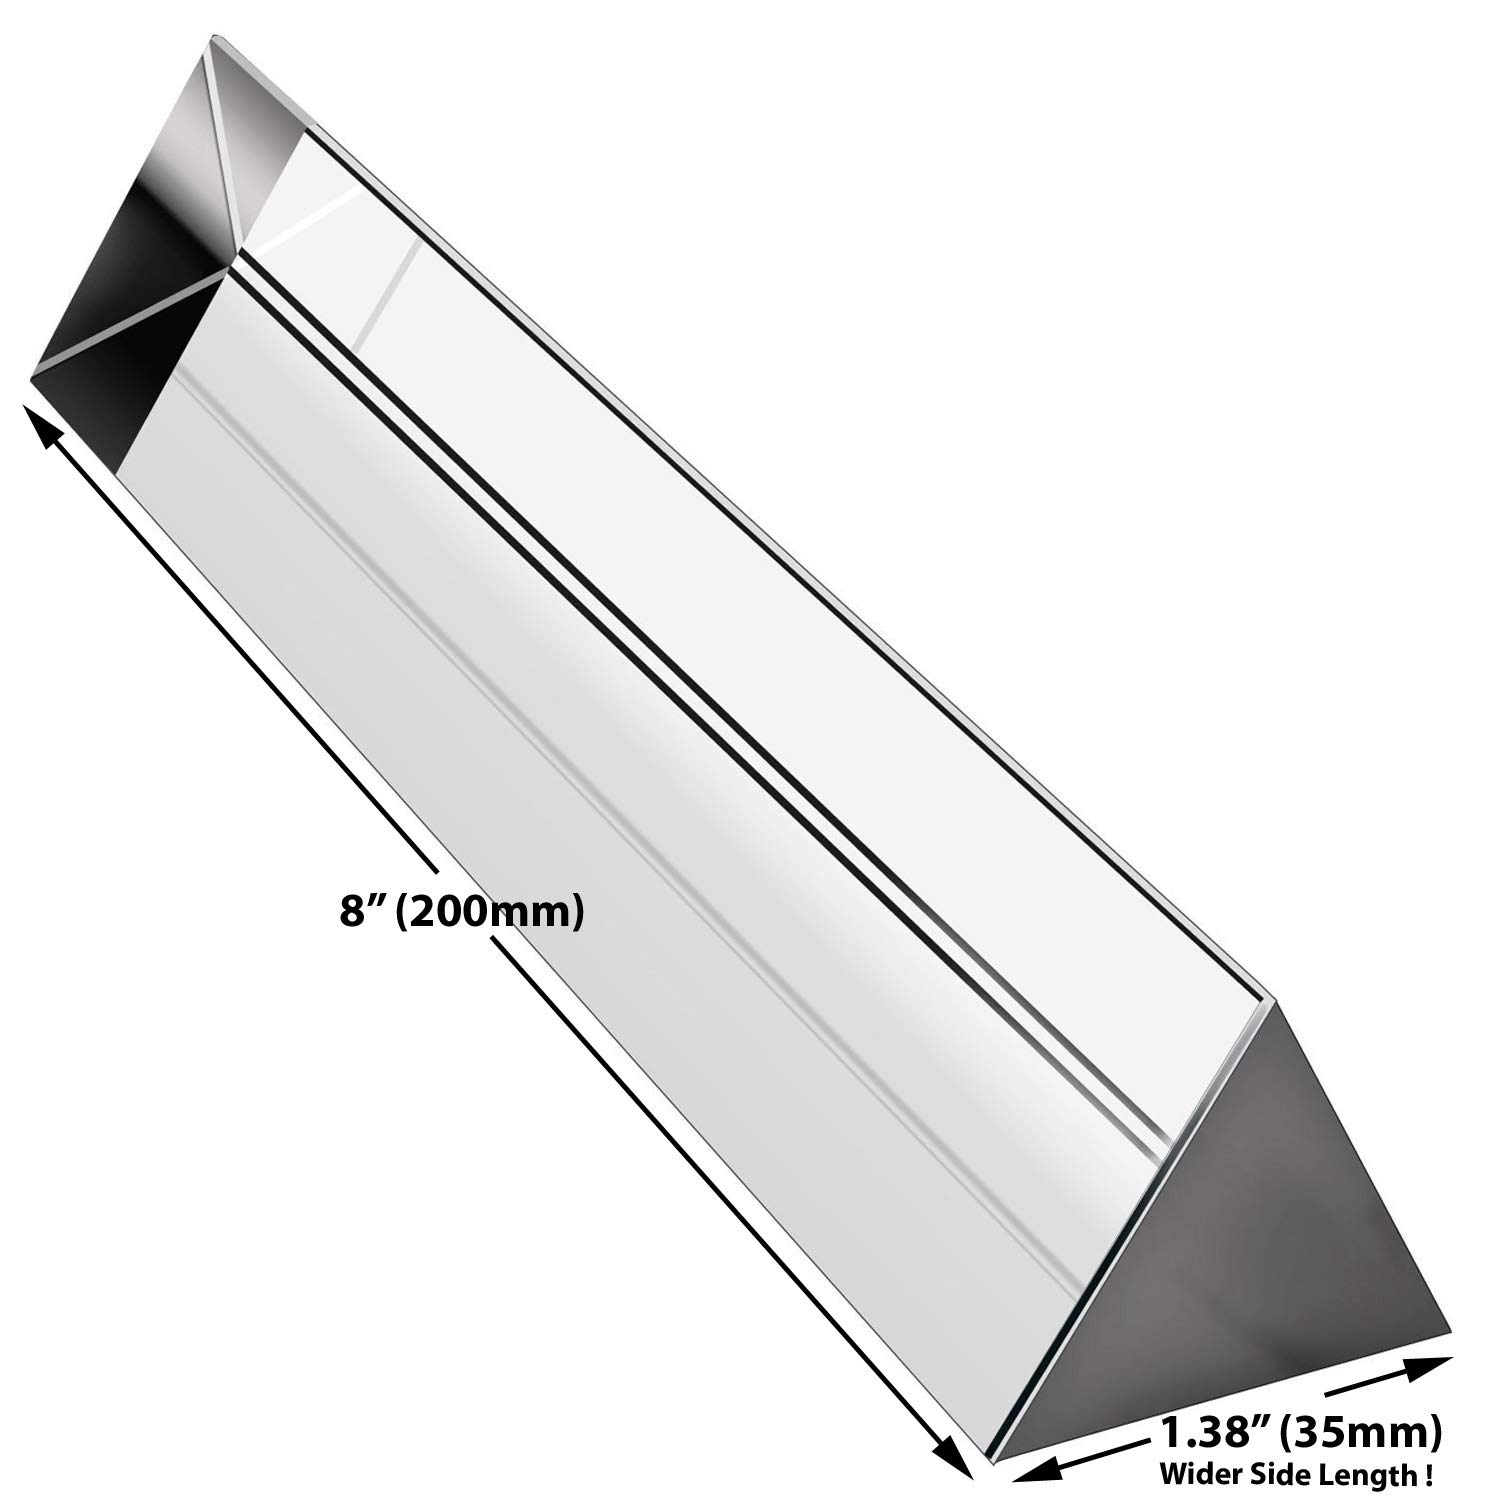 Amlong Crystal 8 inch Optical Glass Triangular Prism for Teaching Light Spectrum Physics and Photo Photography Prism, 200mm